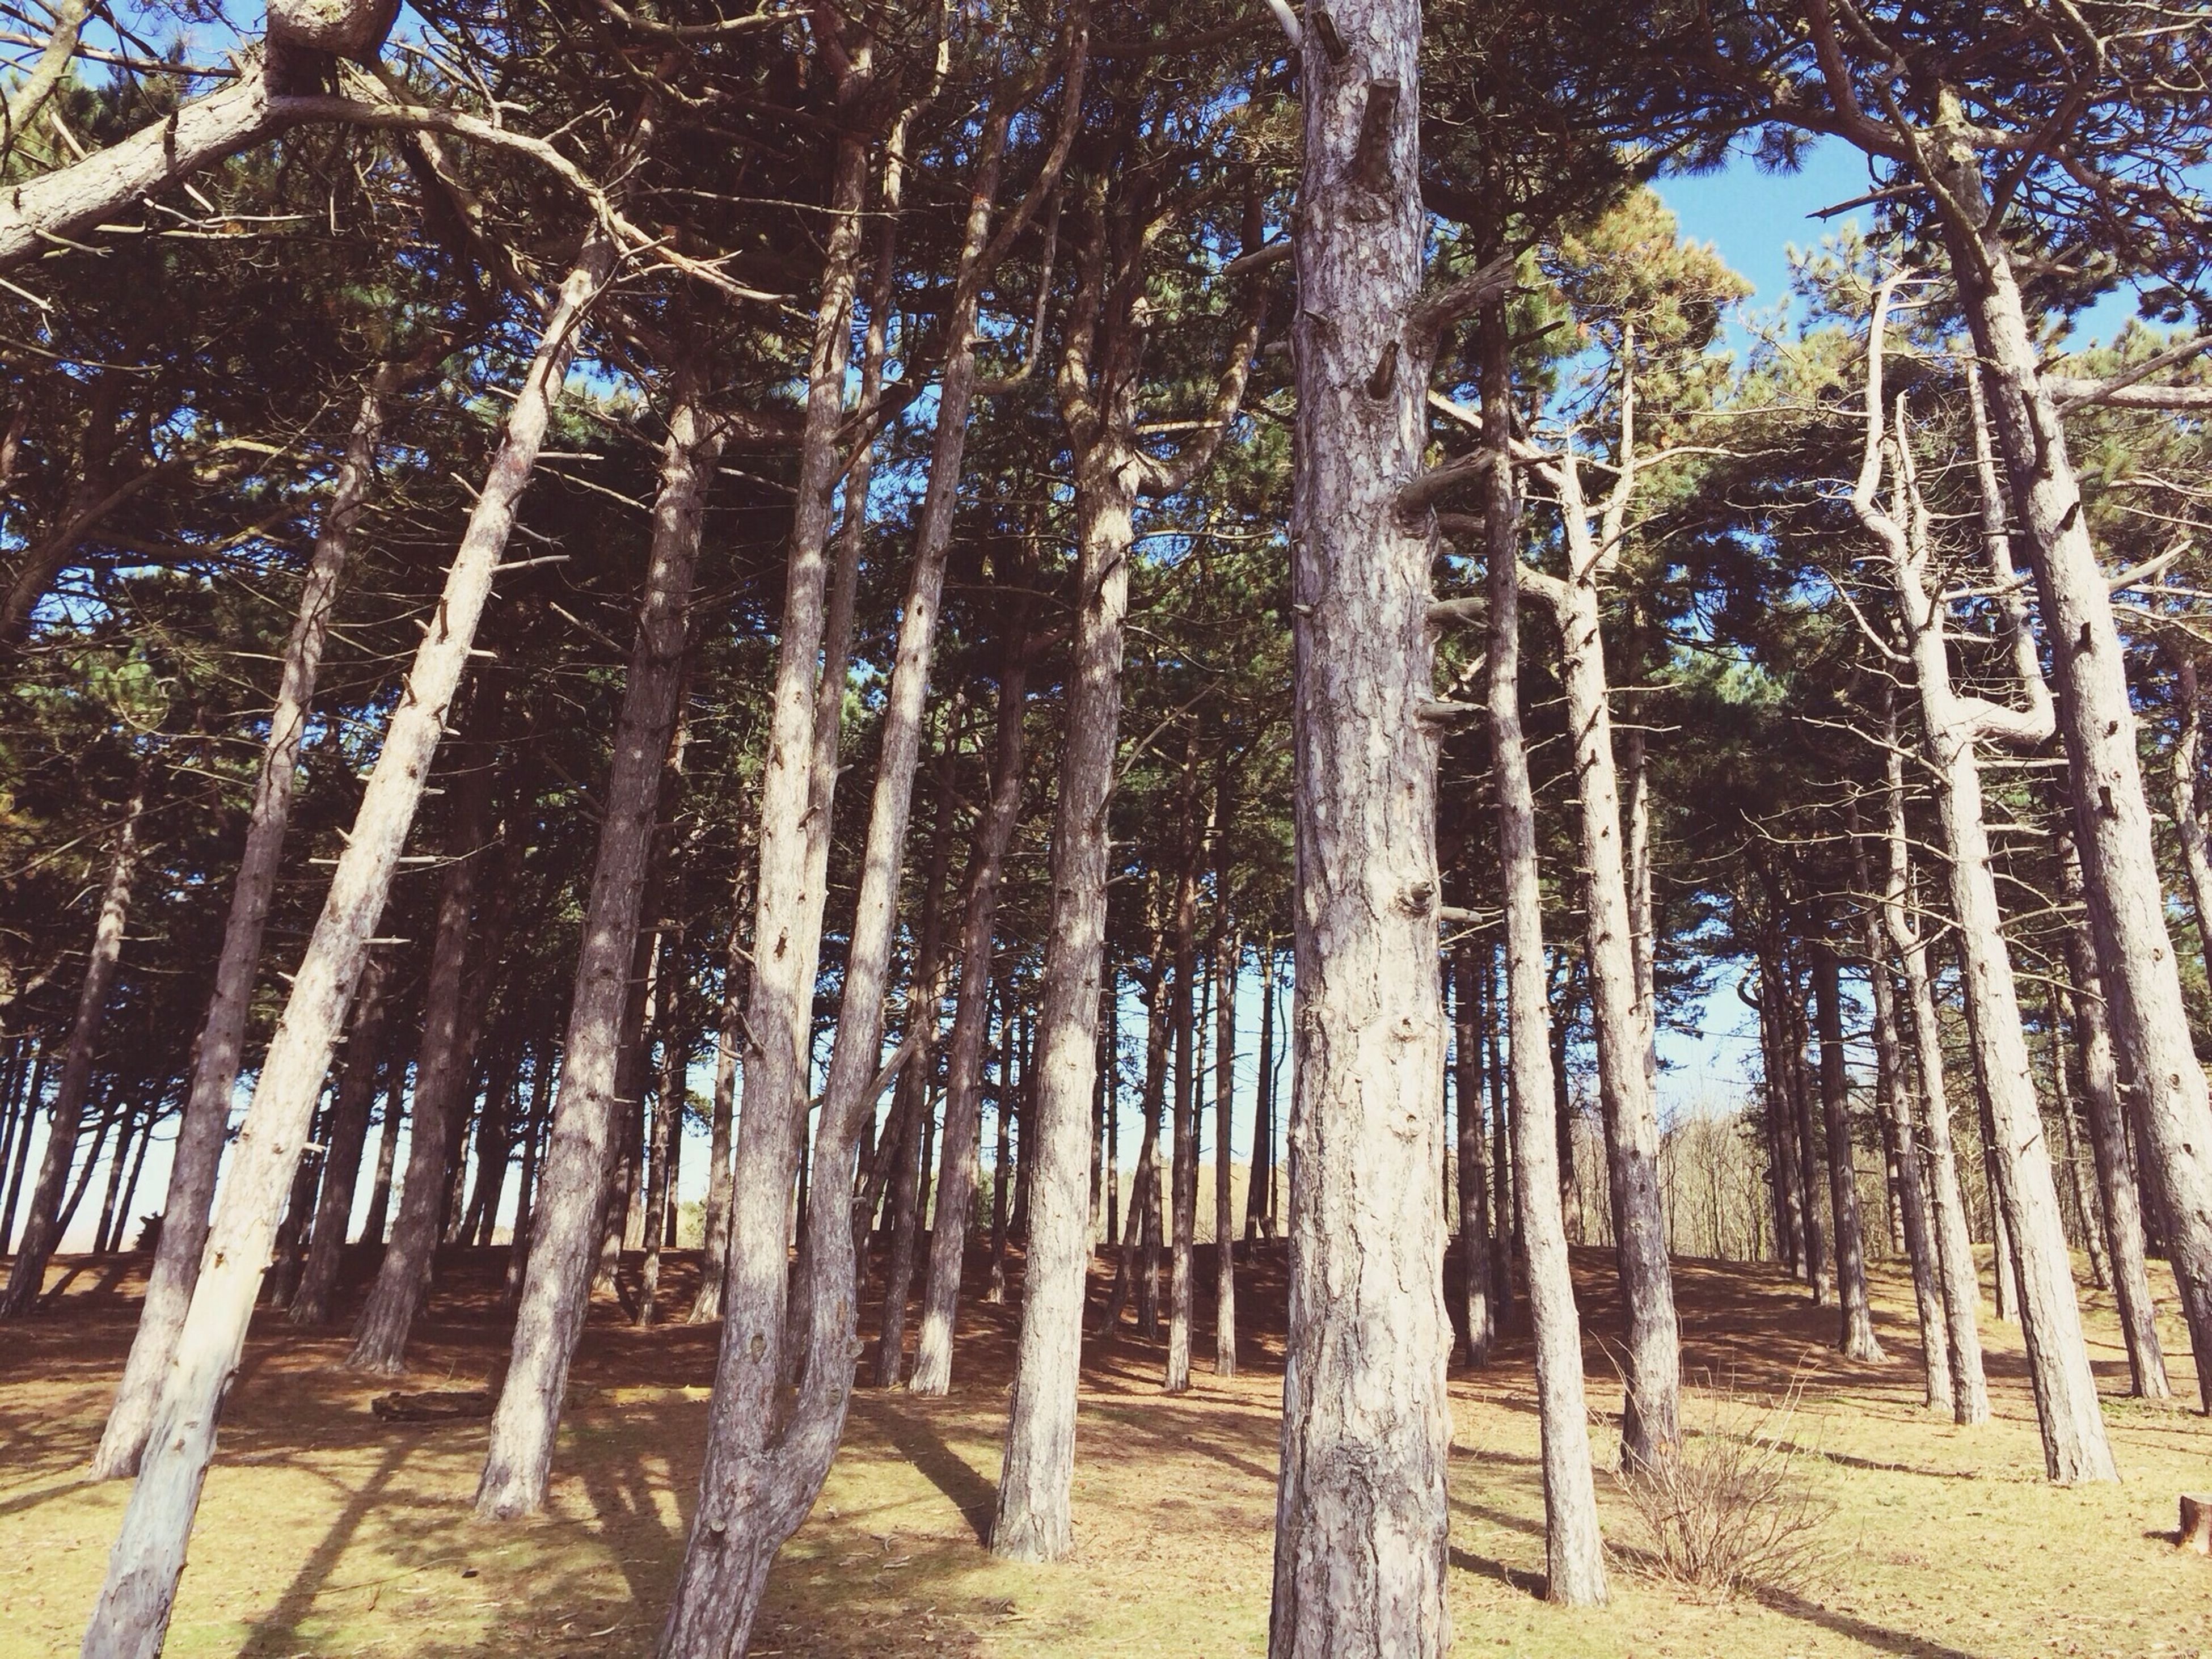 tree, tree trunk, growth, tranquility, woodland, forest, nature, low angle view, tranquil scene, beauty in nature, day, sunlight, outdoors, scenics, tall - high, abundance, non-urban scene, branch, no people, landscape